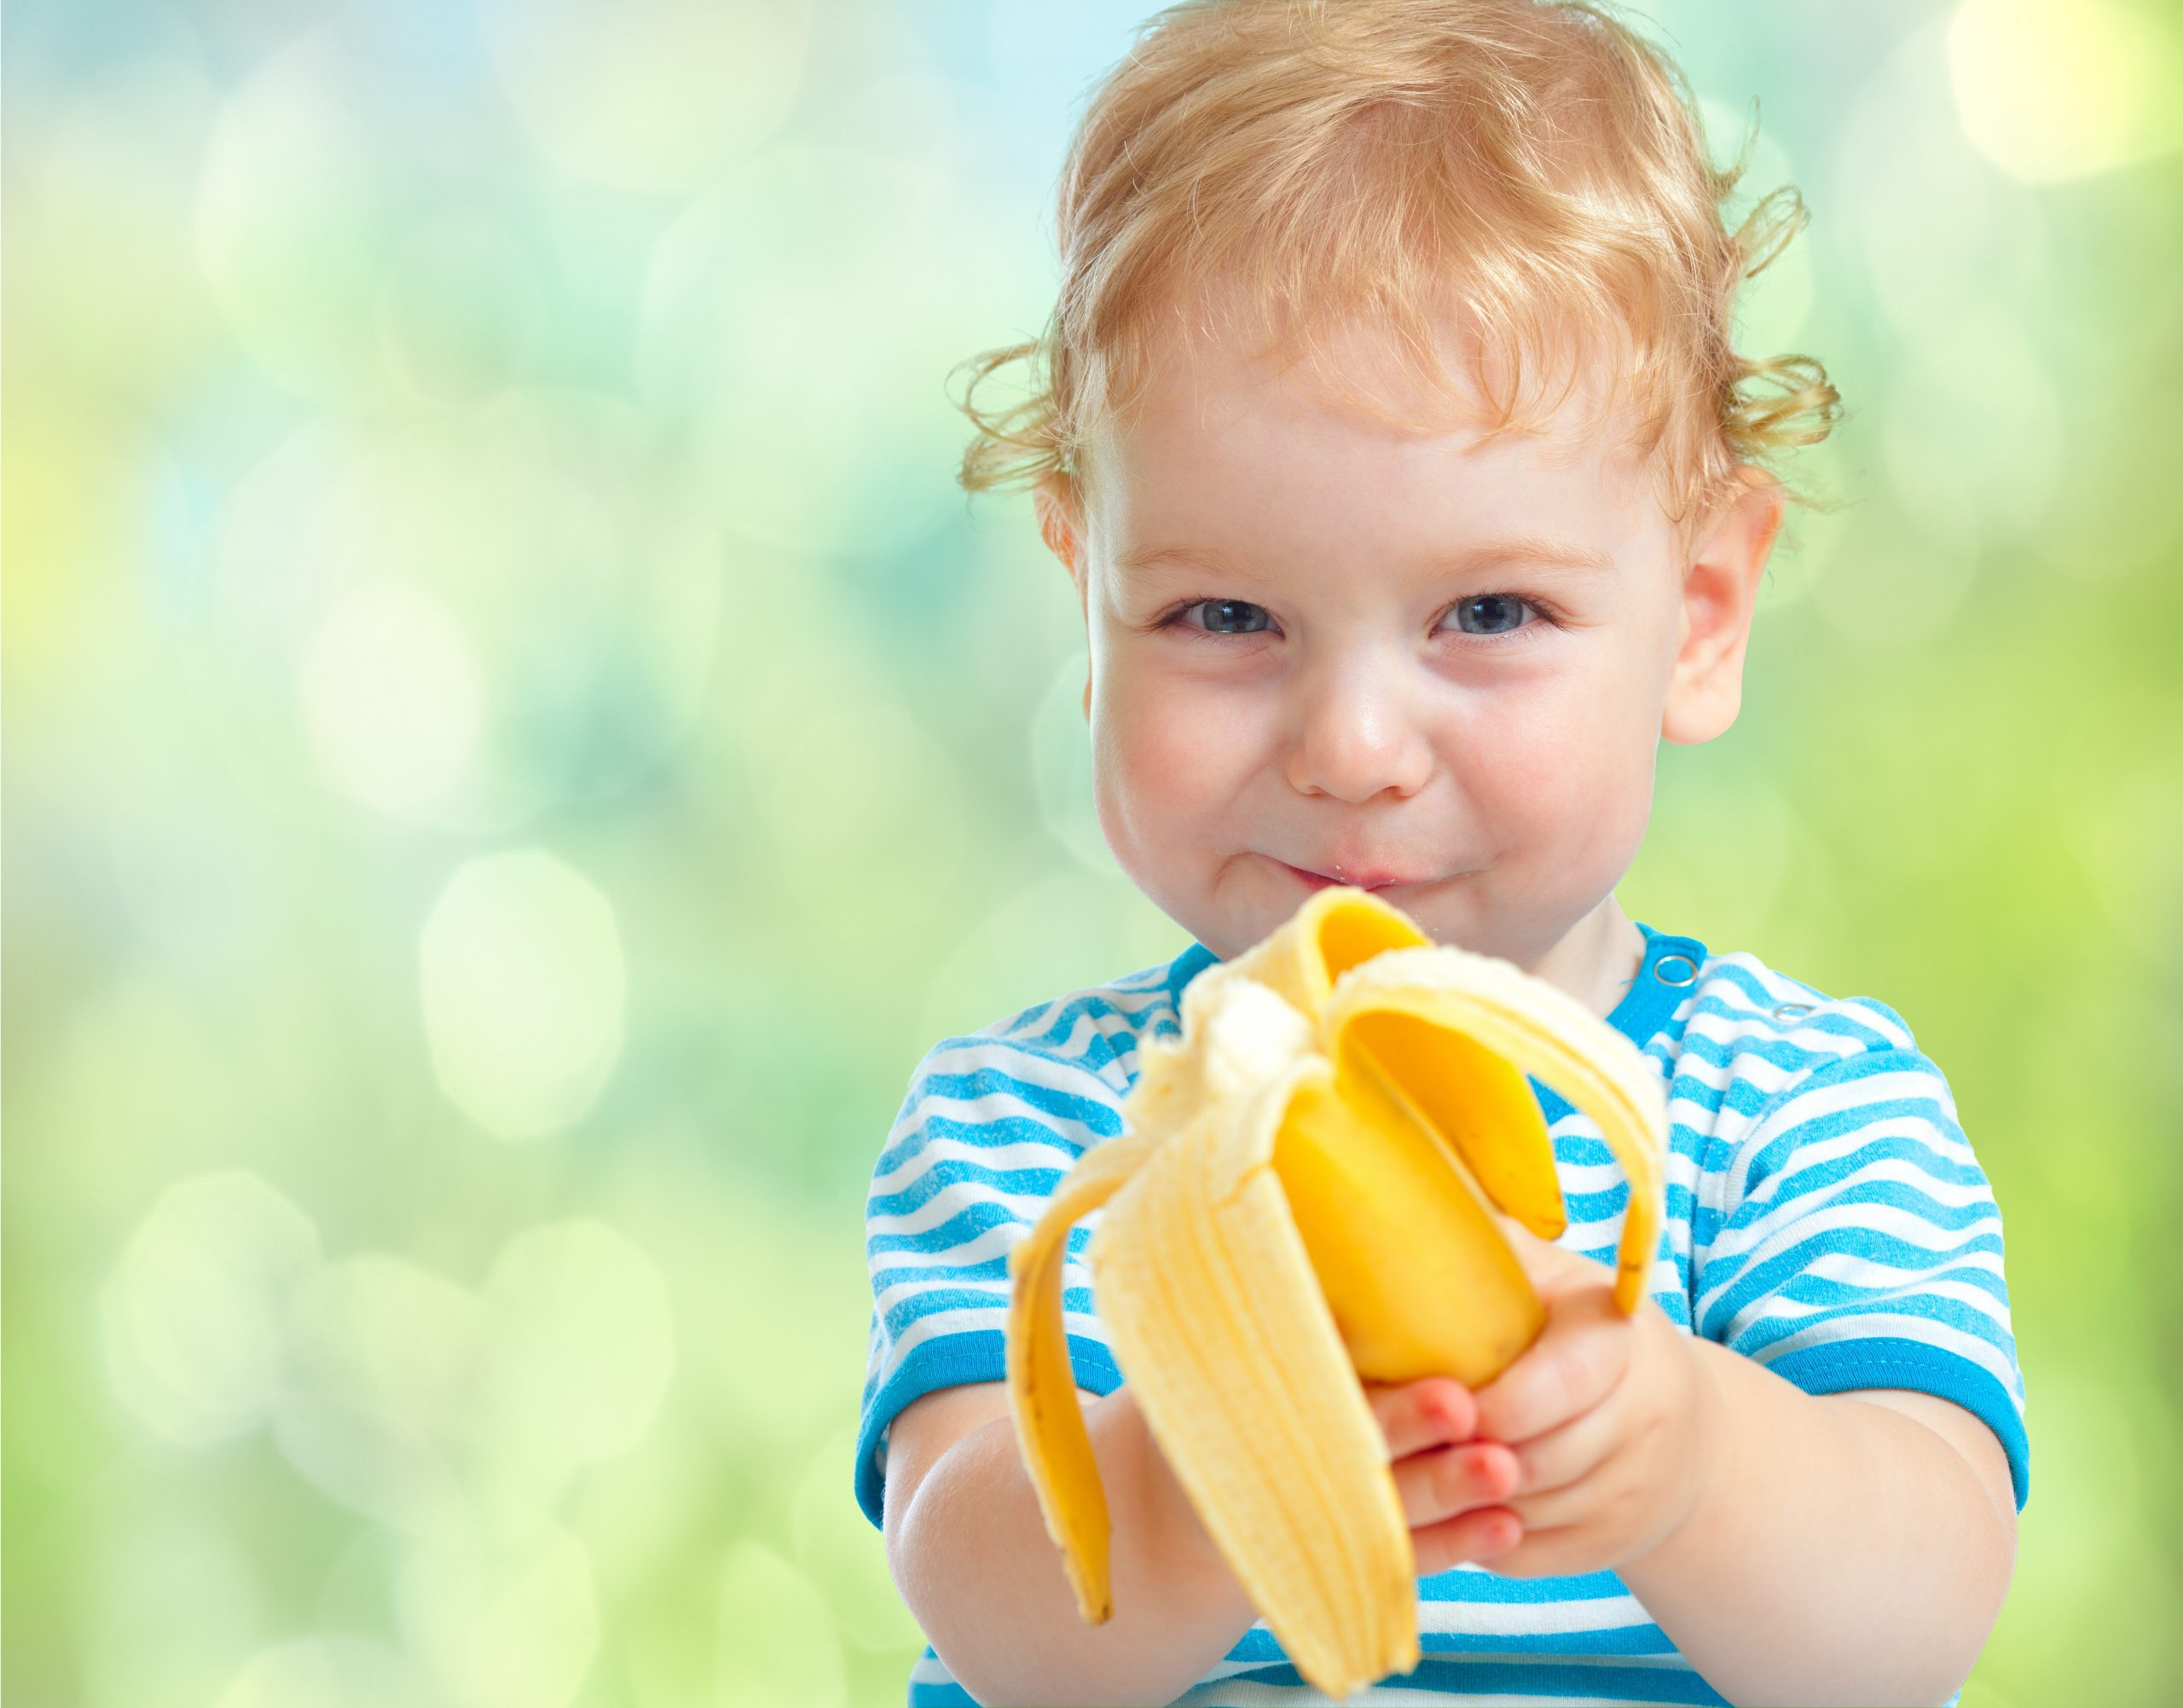 child with banana